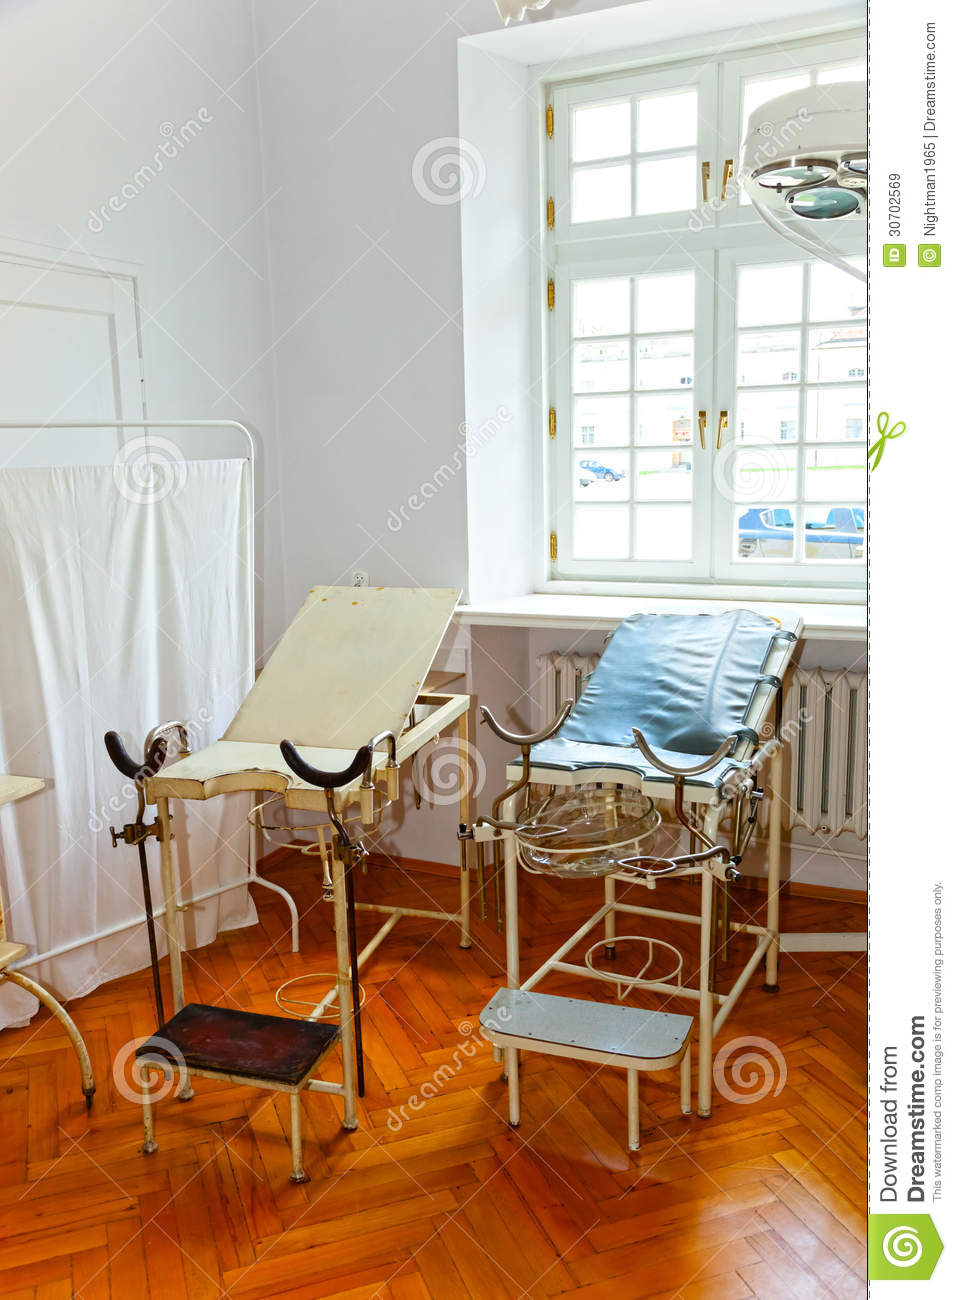 Old Gynecological Equipment Stock Image  Image of healthy